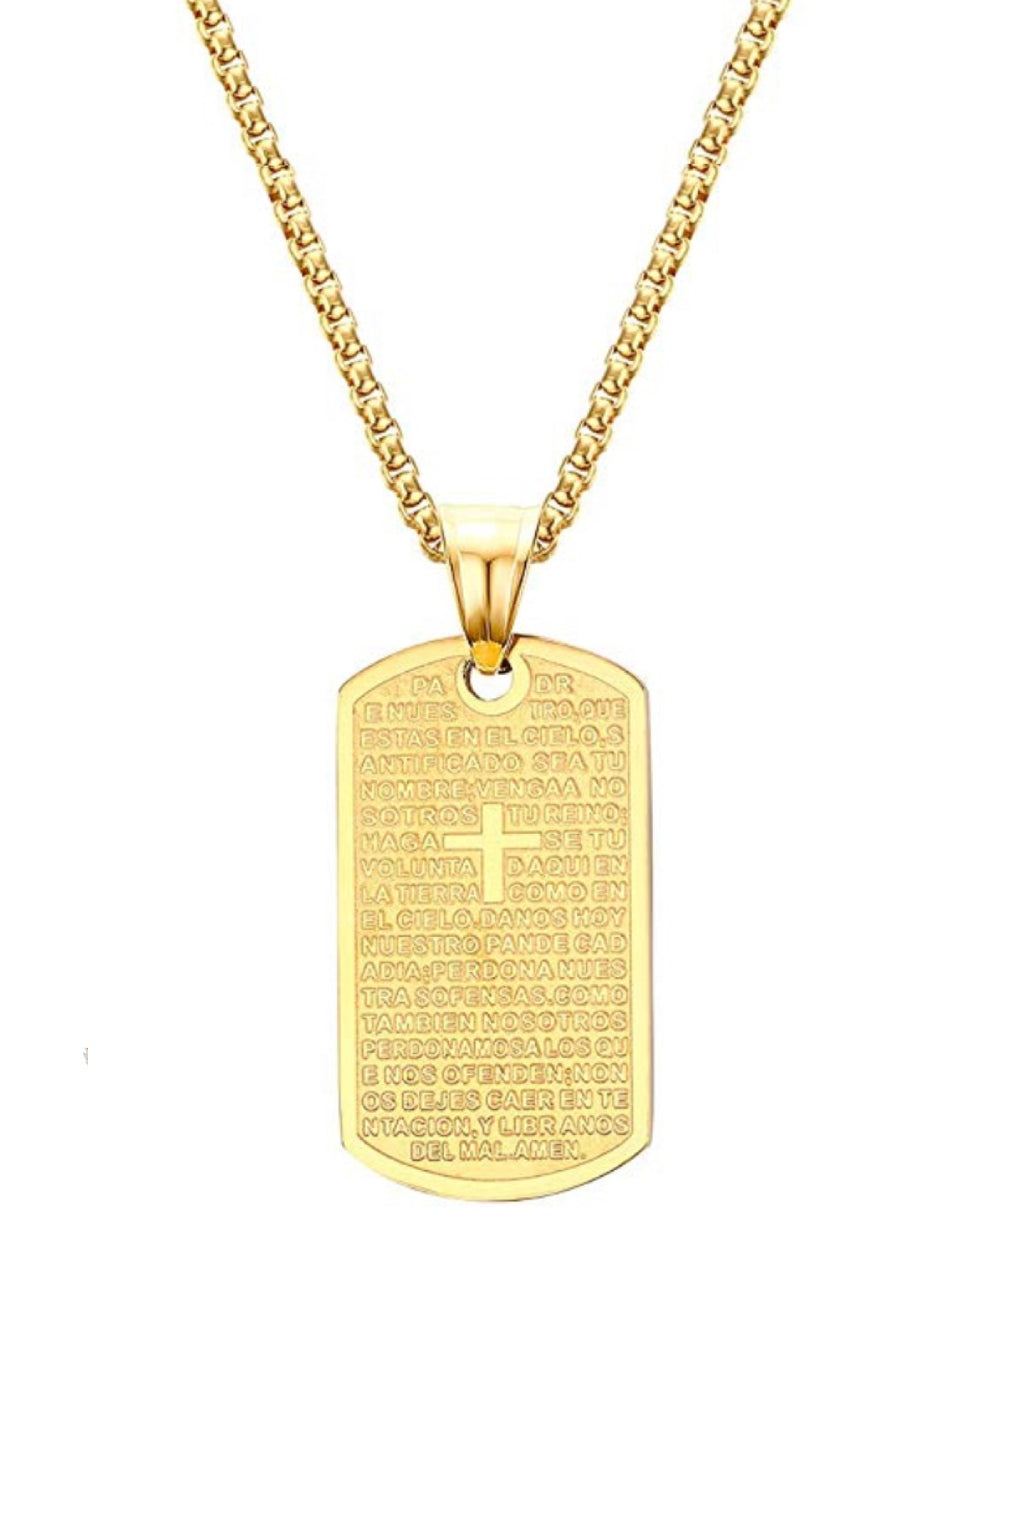 18k Gold Religious Cross Tag Necklace